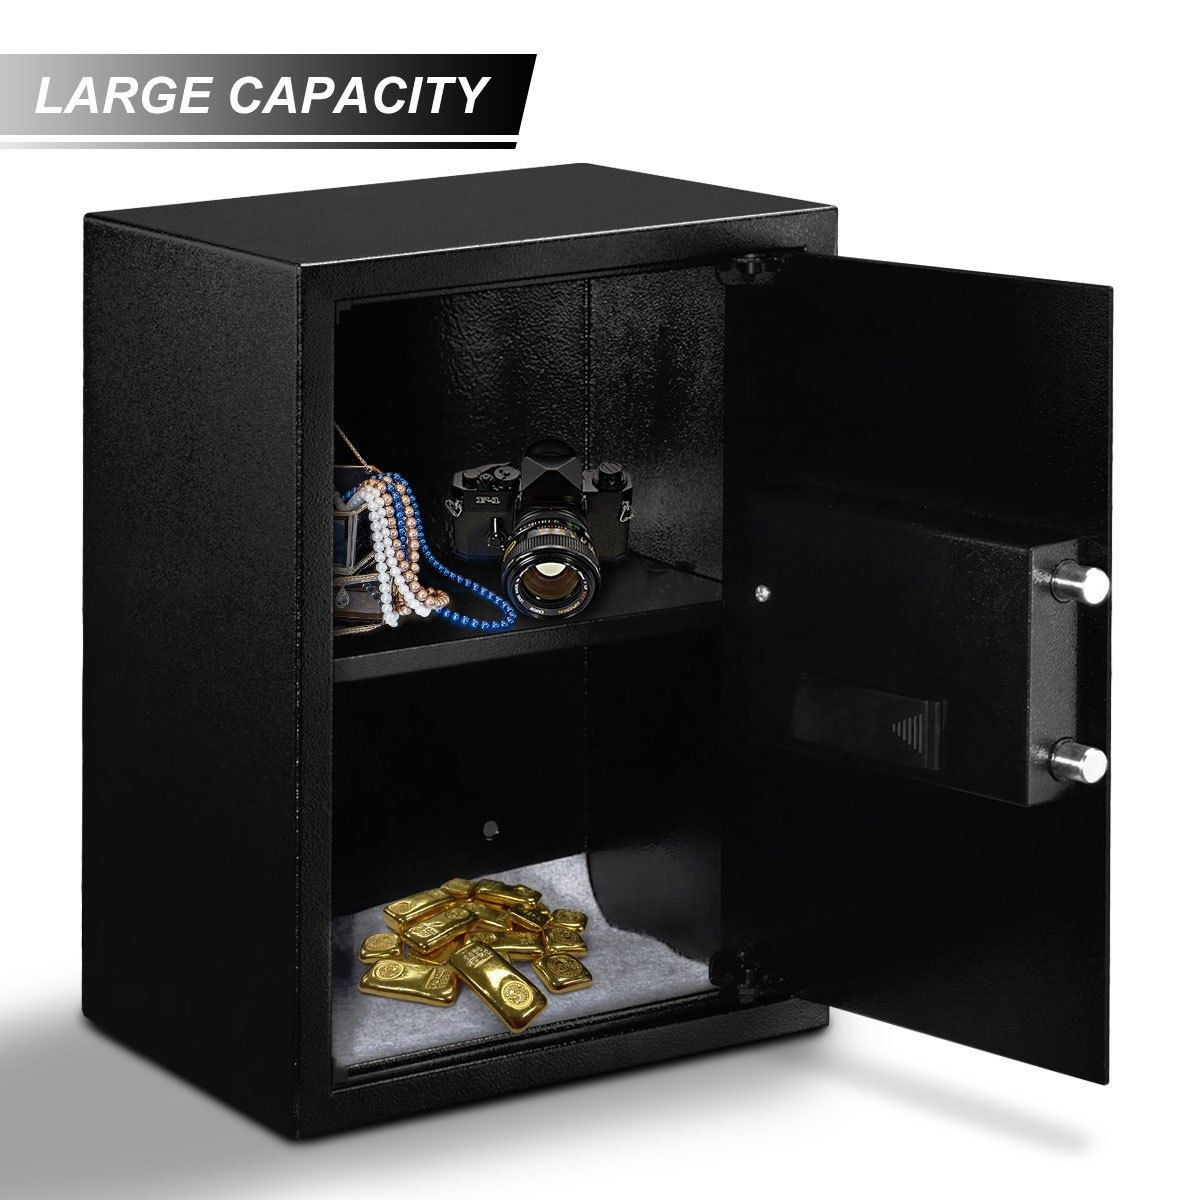 how to open sentry fire safe without key